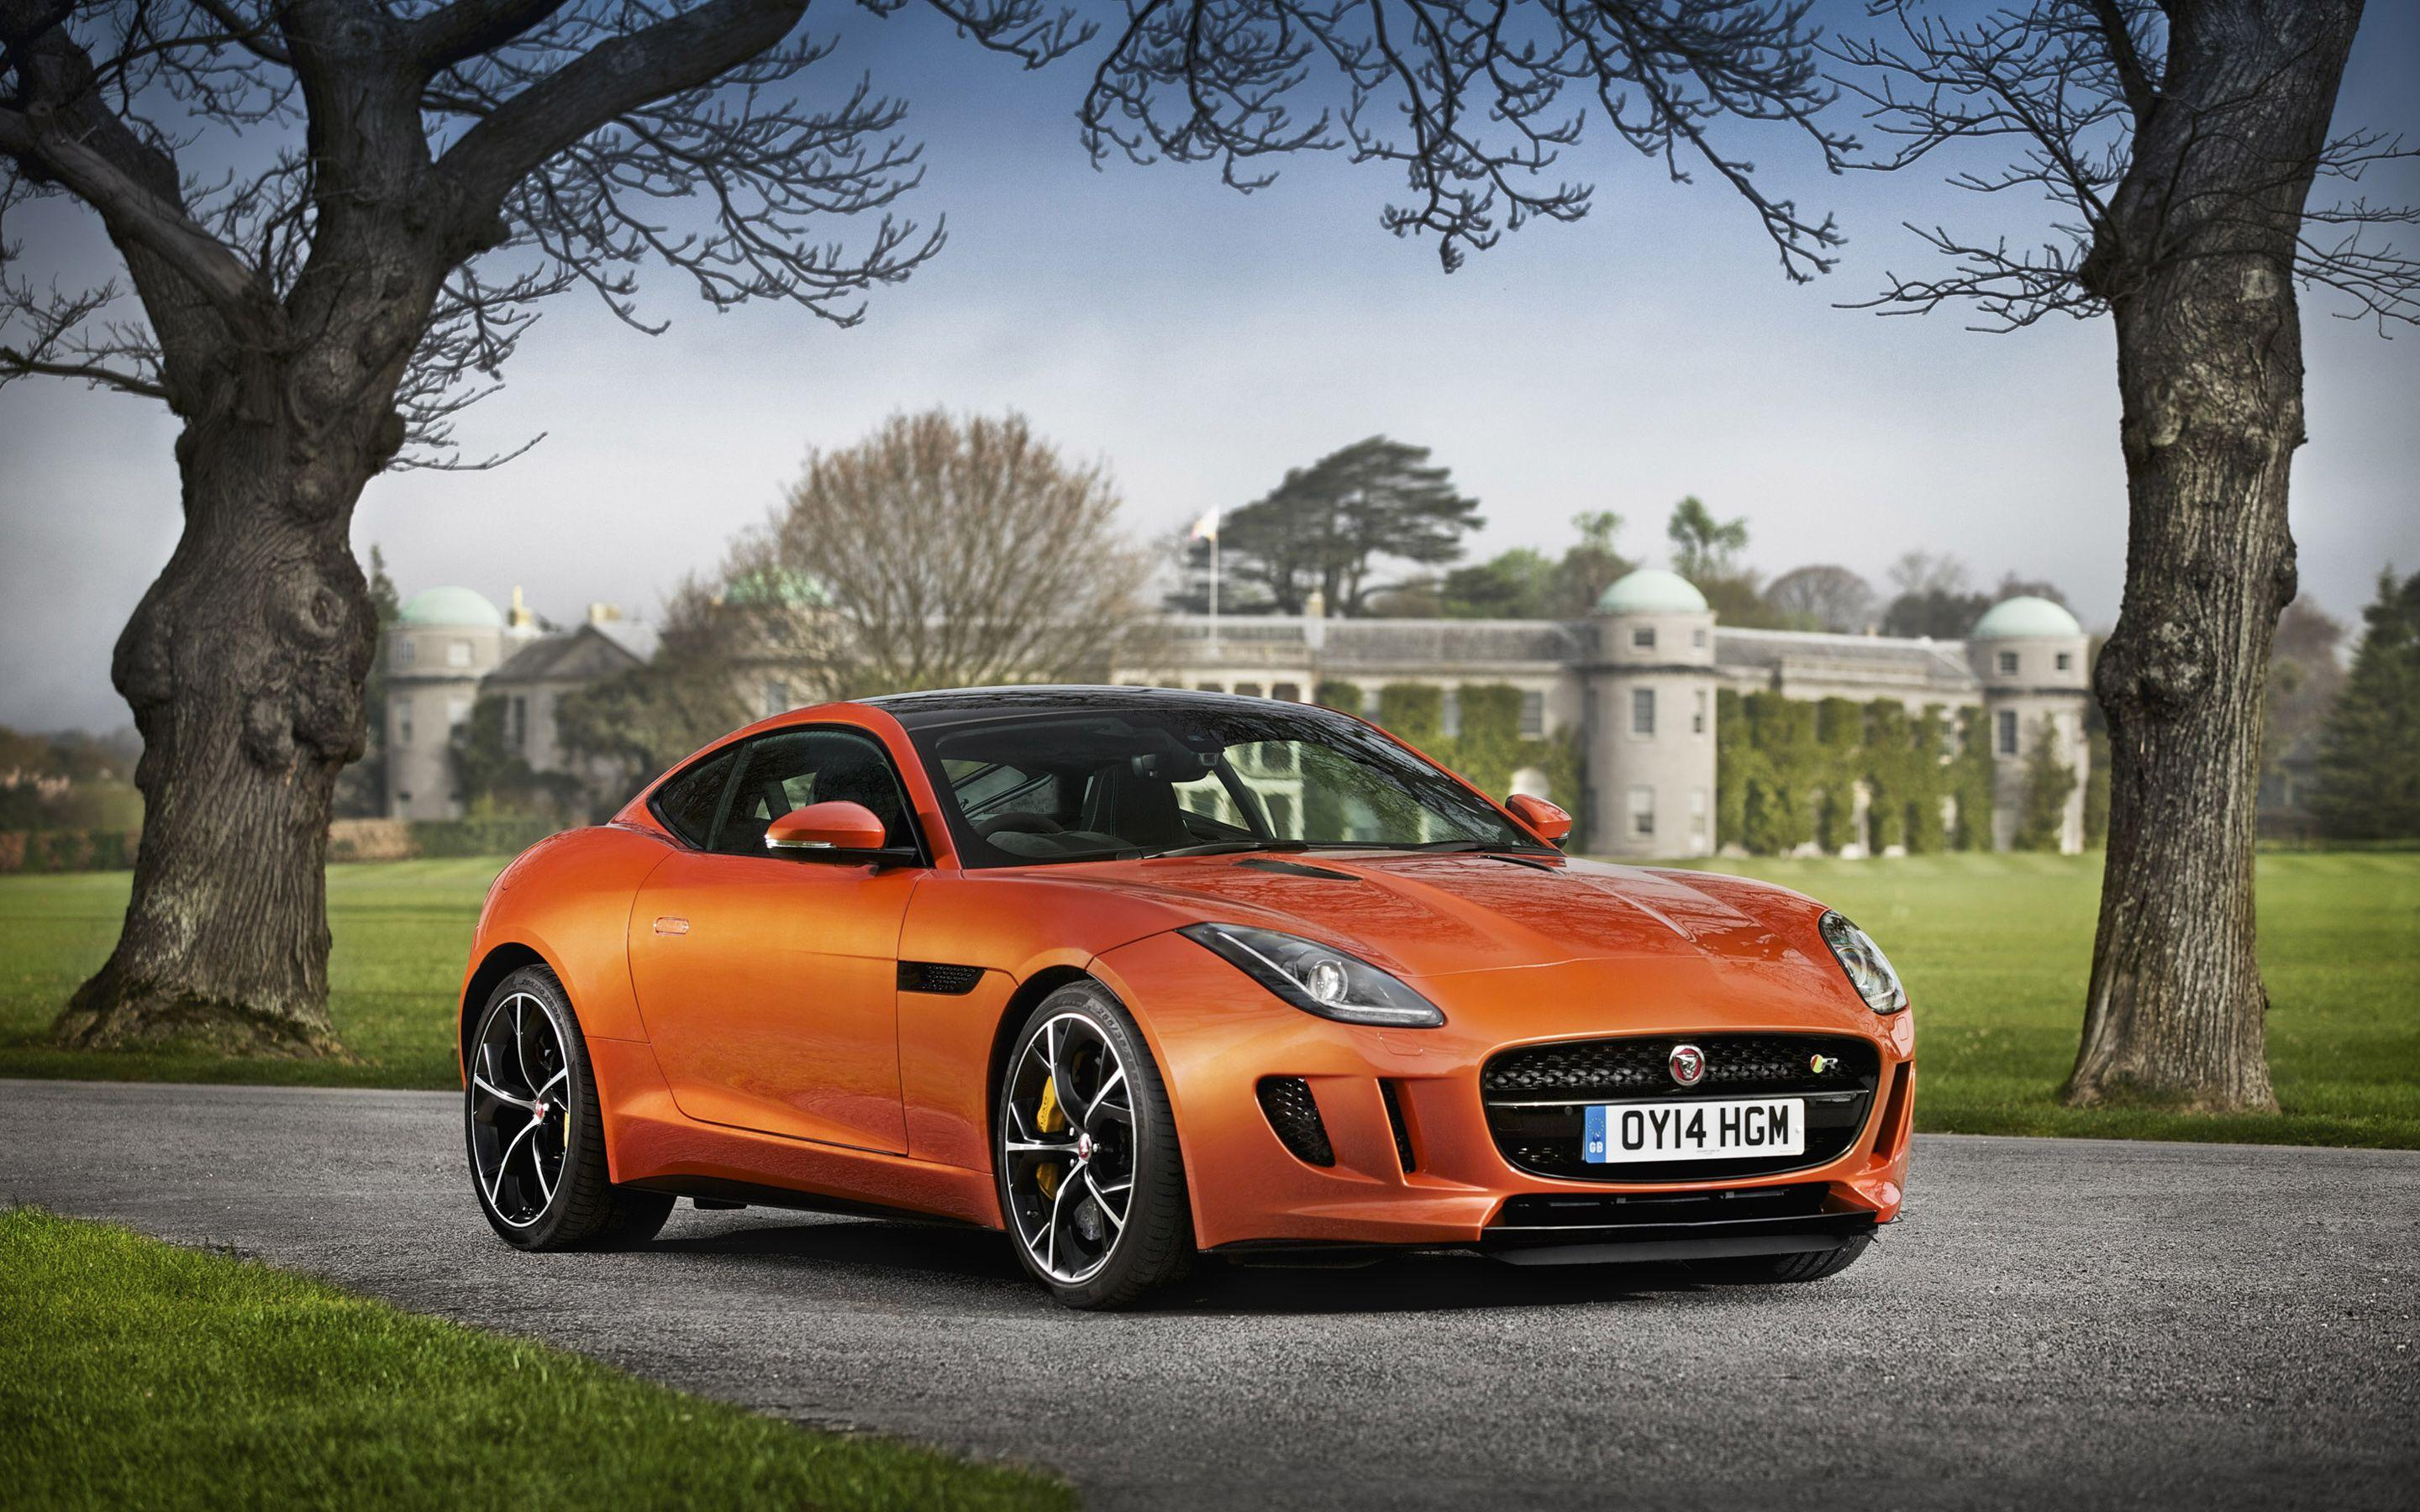 2014 Jaguar F type R Coupe 7 Wallpapers